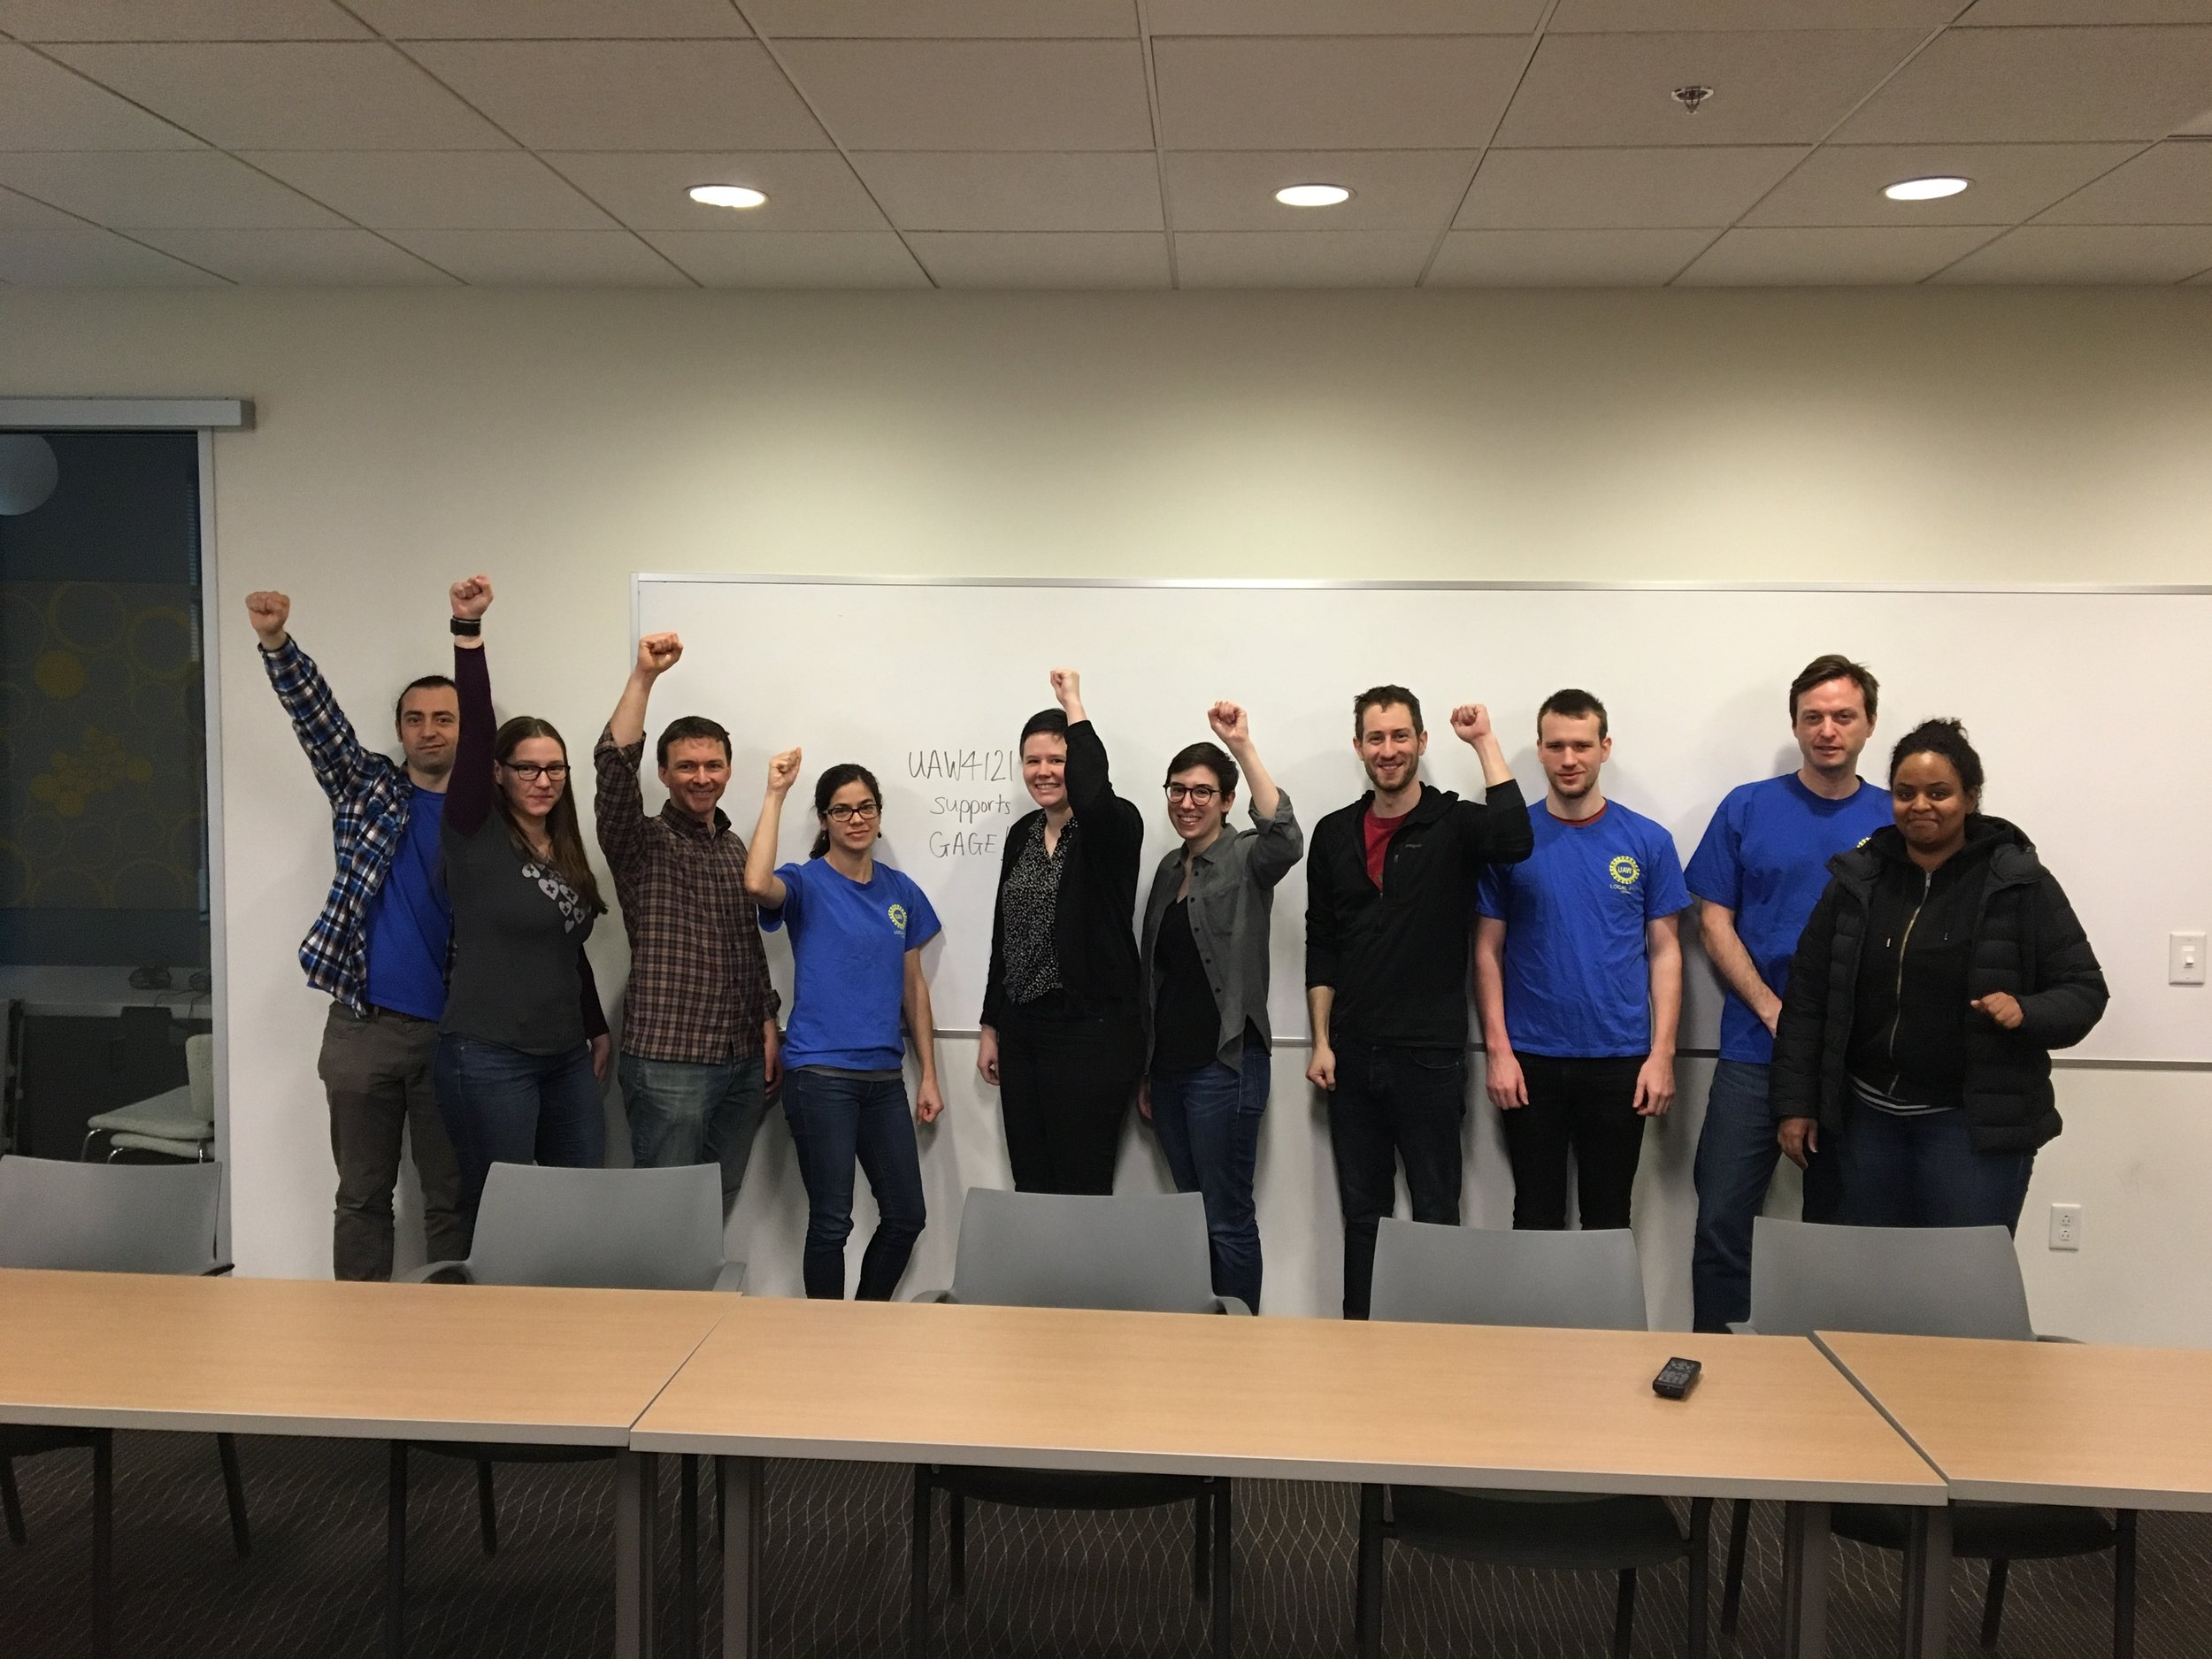 UAW Local 4121 : The Union of Academic Student Employees at the University of Washington, who also generously sent the following open letter to President DeGioia.